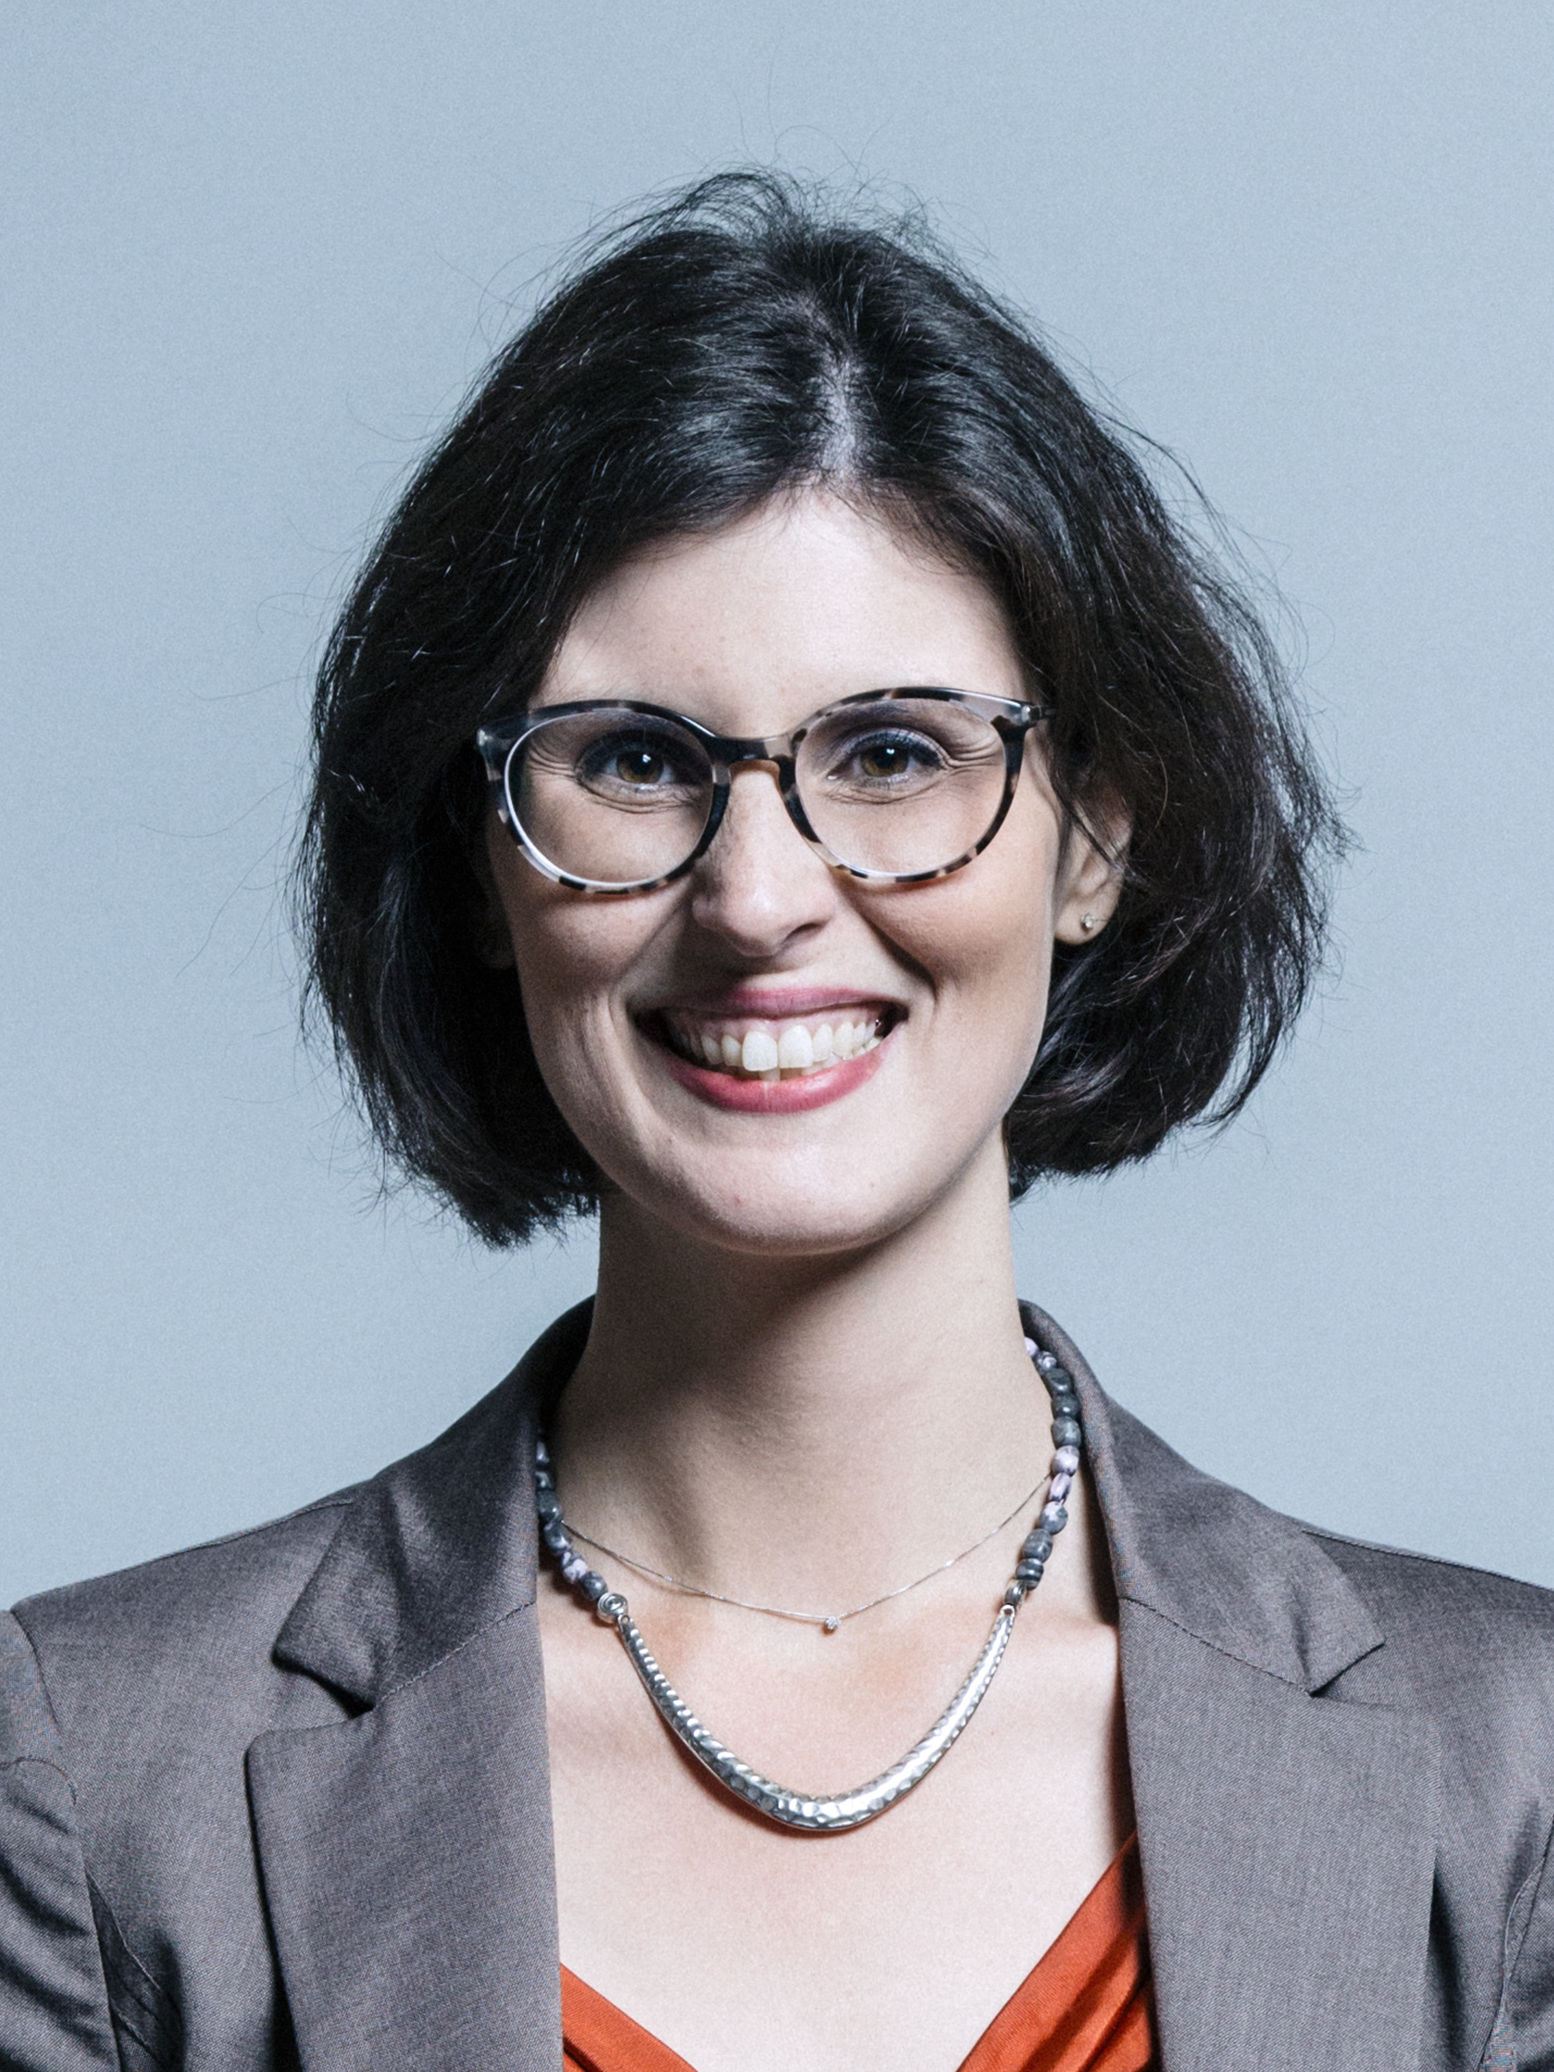 Official_portrait_of_Layla_Moran_crop_2.